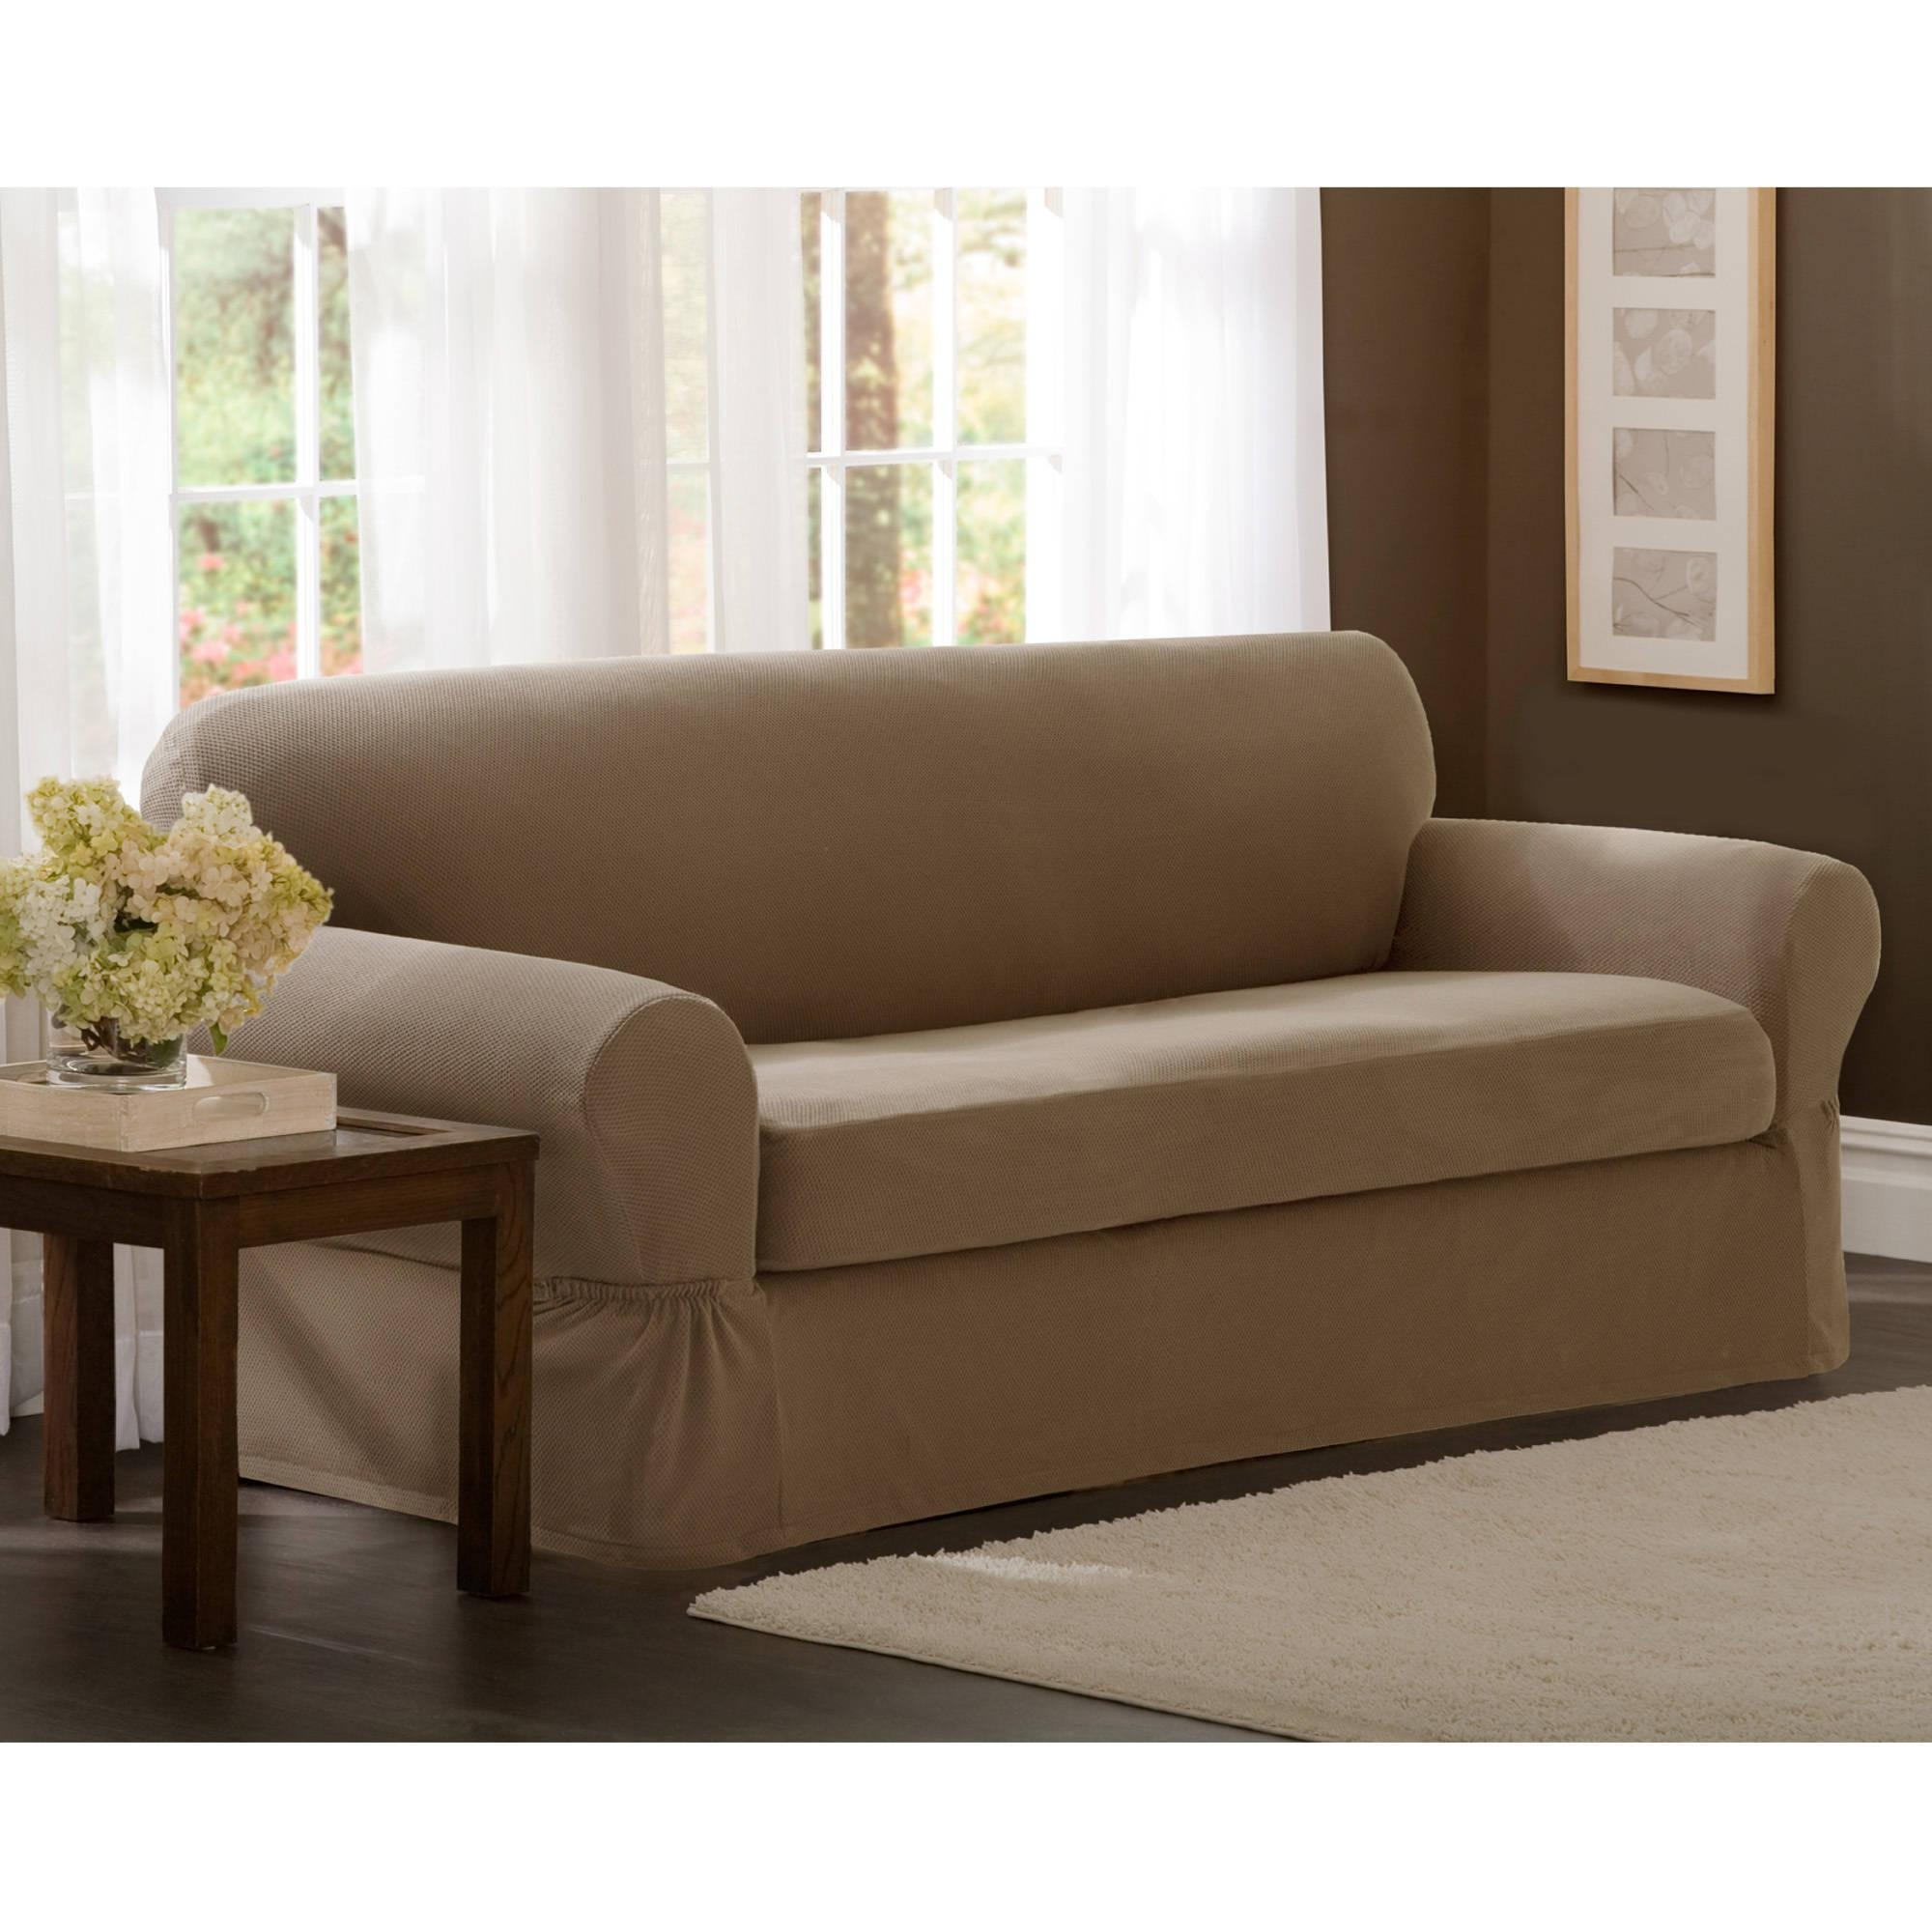 Maytex Stretch Pixel 2 Piece Loveseat Slipcover – Walmart Pertaining To Loveseat Slipcovers 3 Pieces (View 6 of 20)